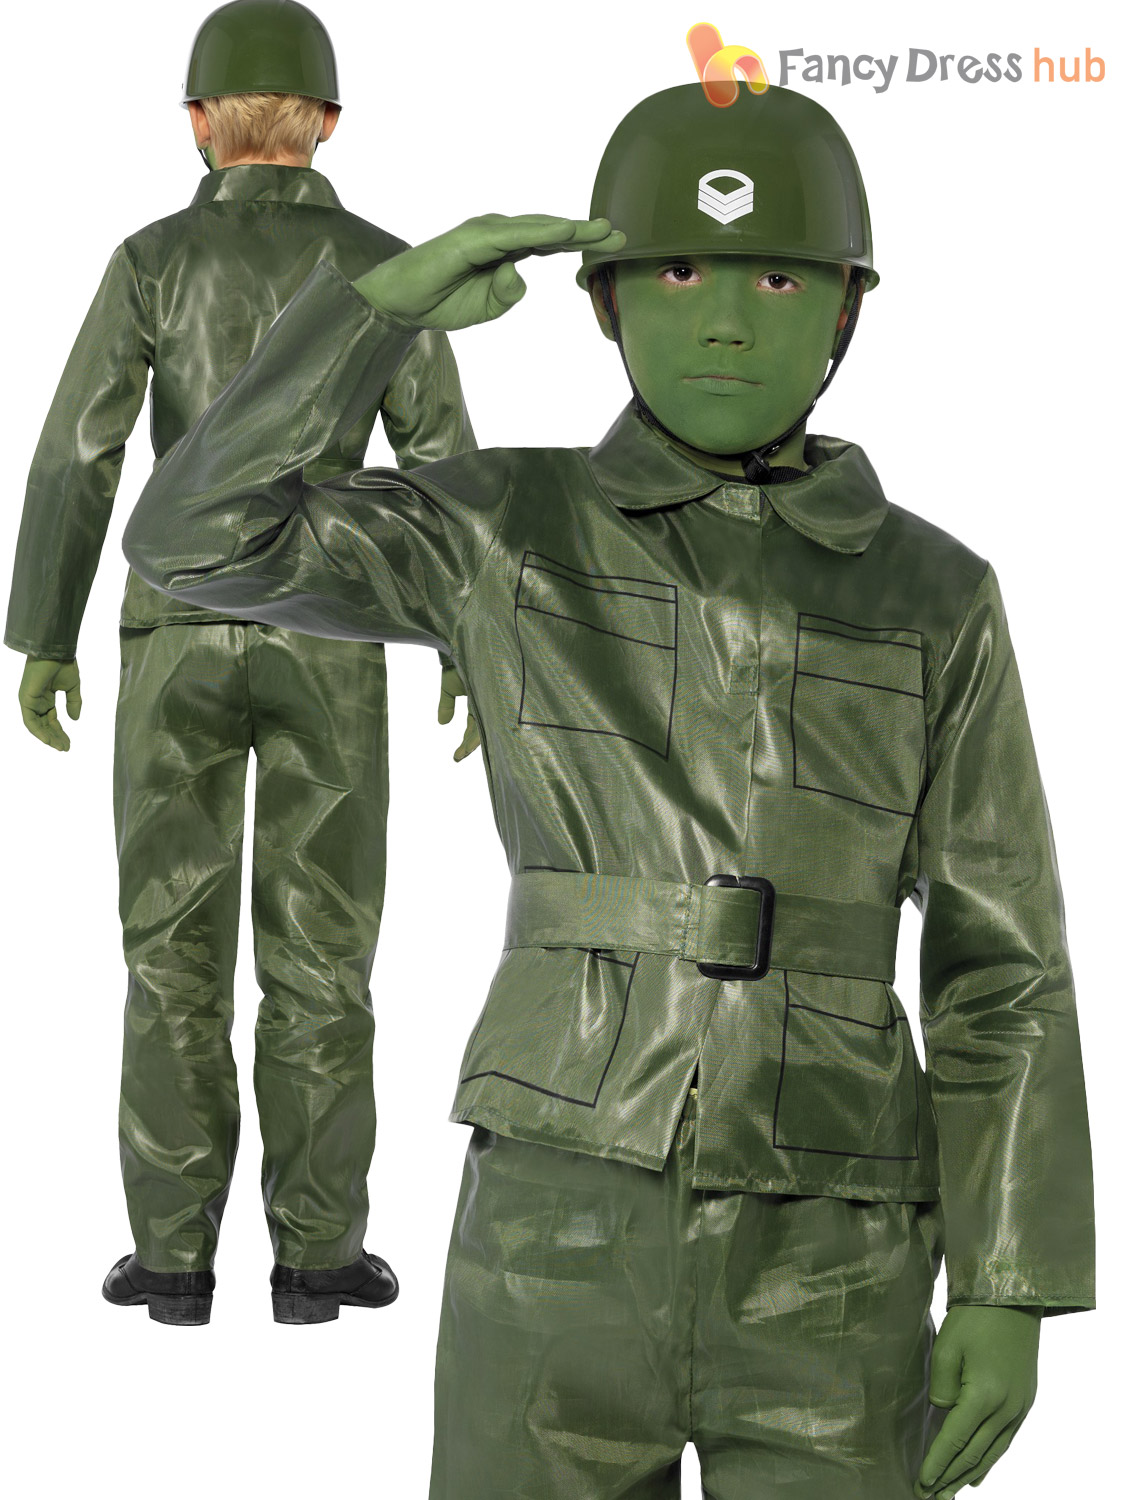 Toy Soldiers For Boys : Boys green army plastic toy soldier kids fancy dress up